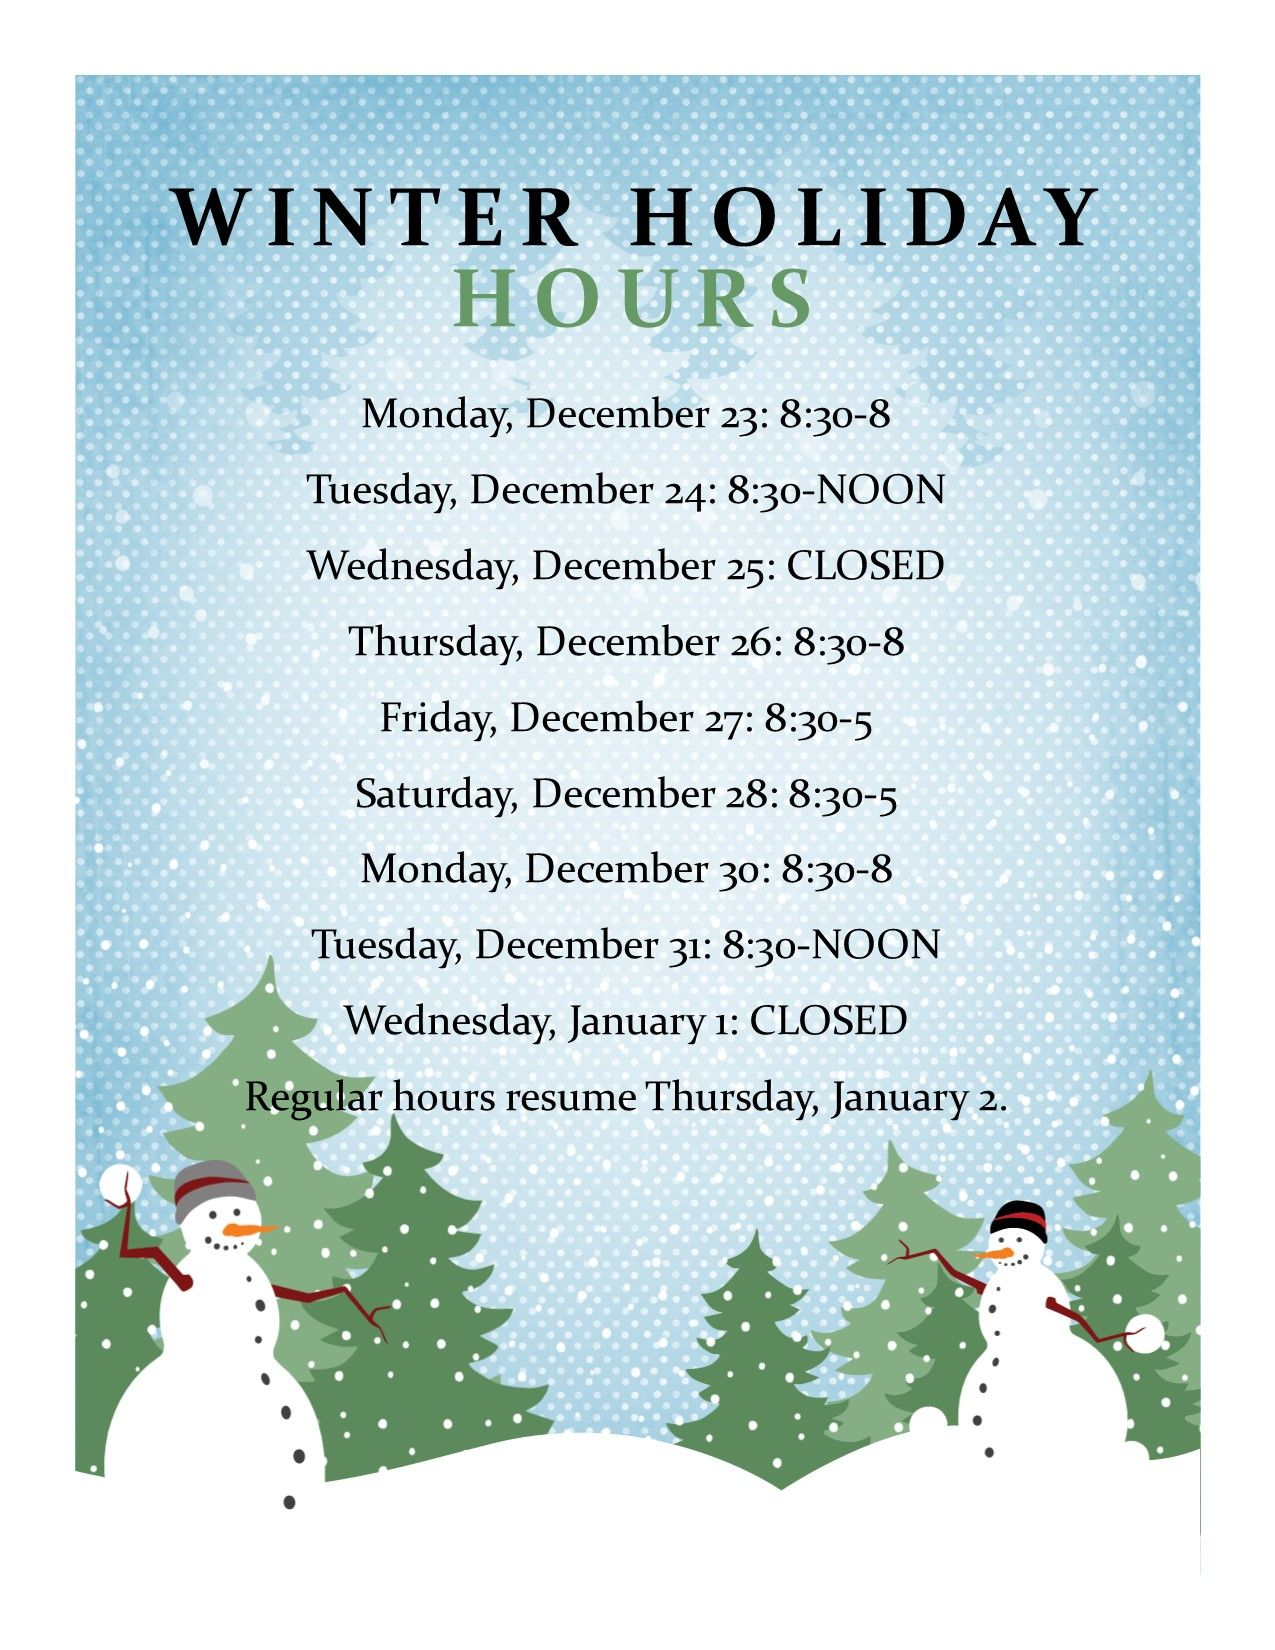 Free Templates For Business Closing For The Holiday Google Search Business Hours Sign Closed For Holidays Holiday Messages